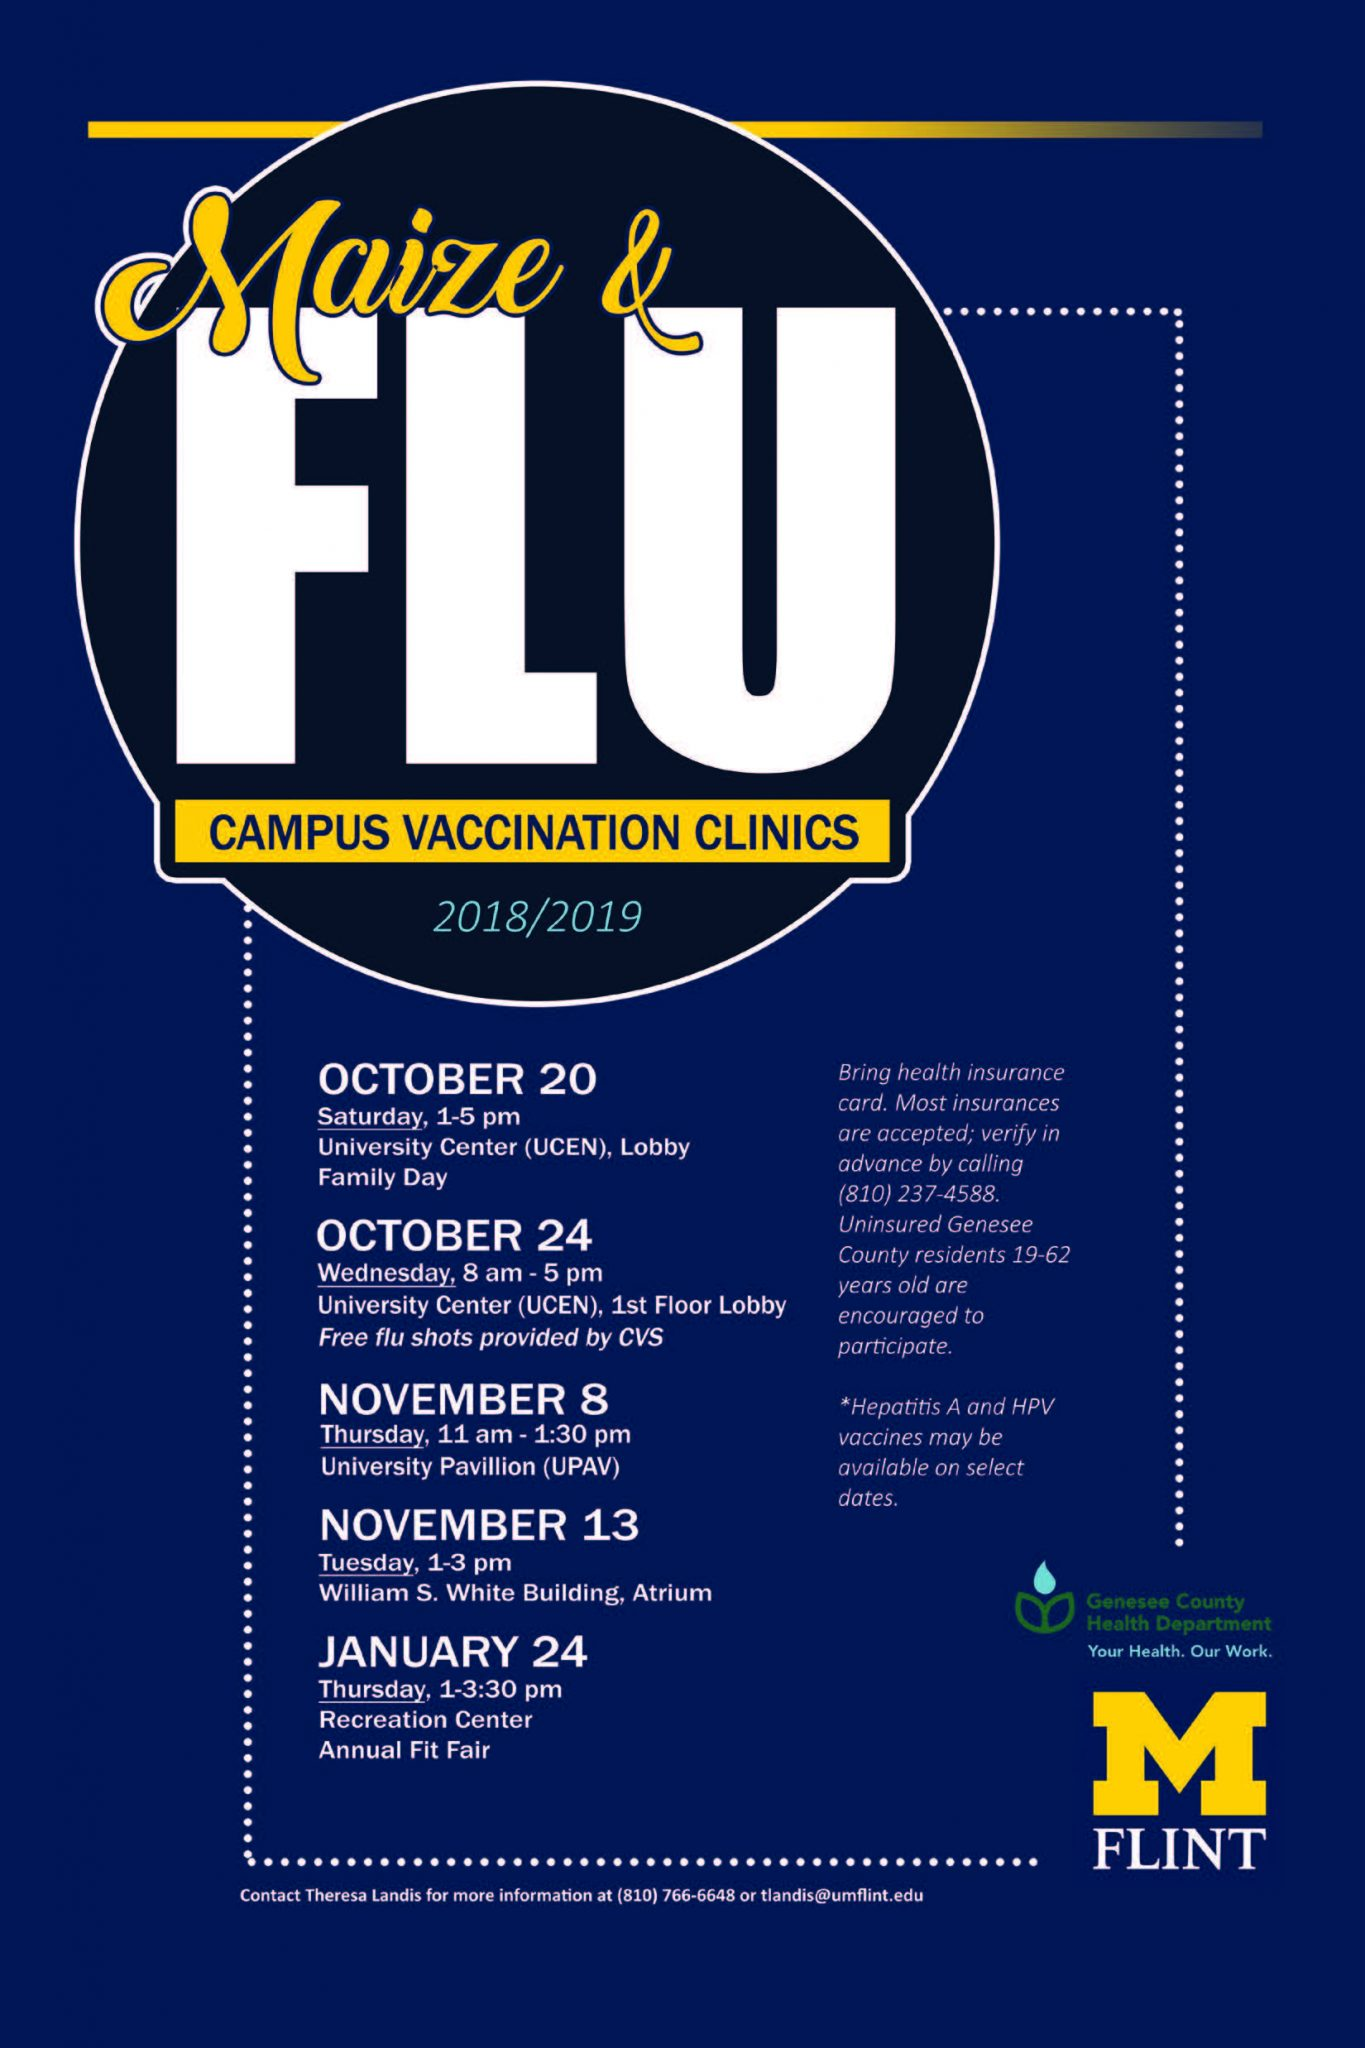 M&Flu date/time changes